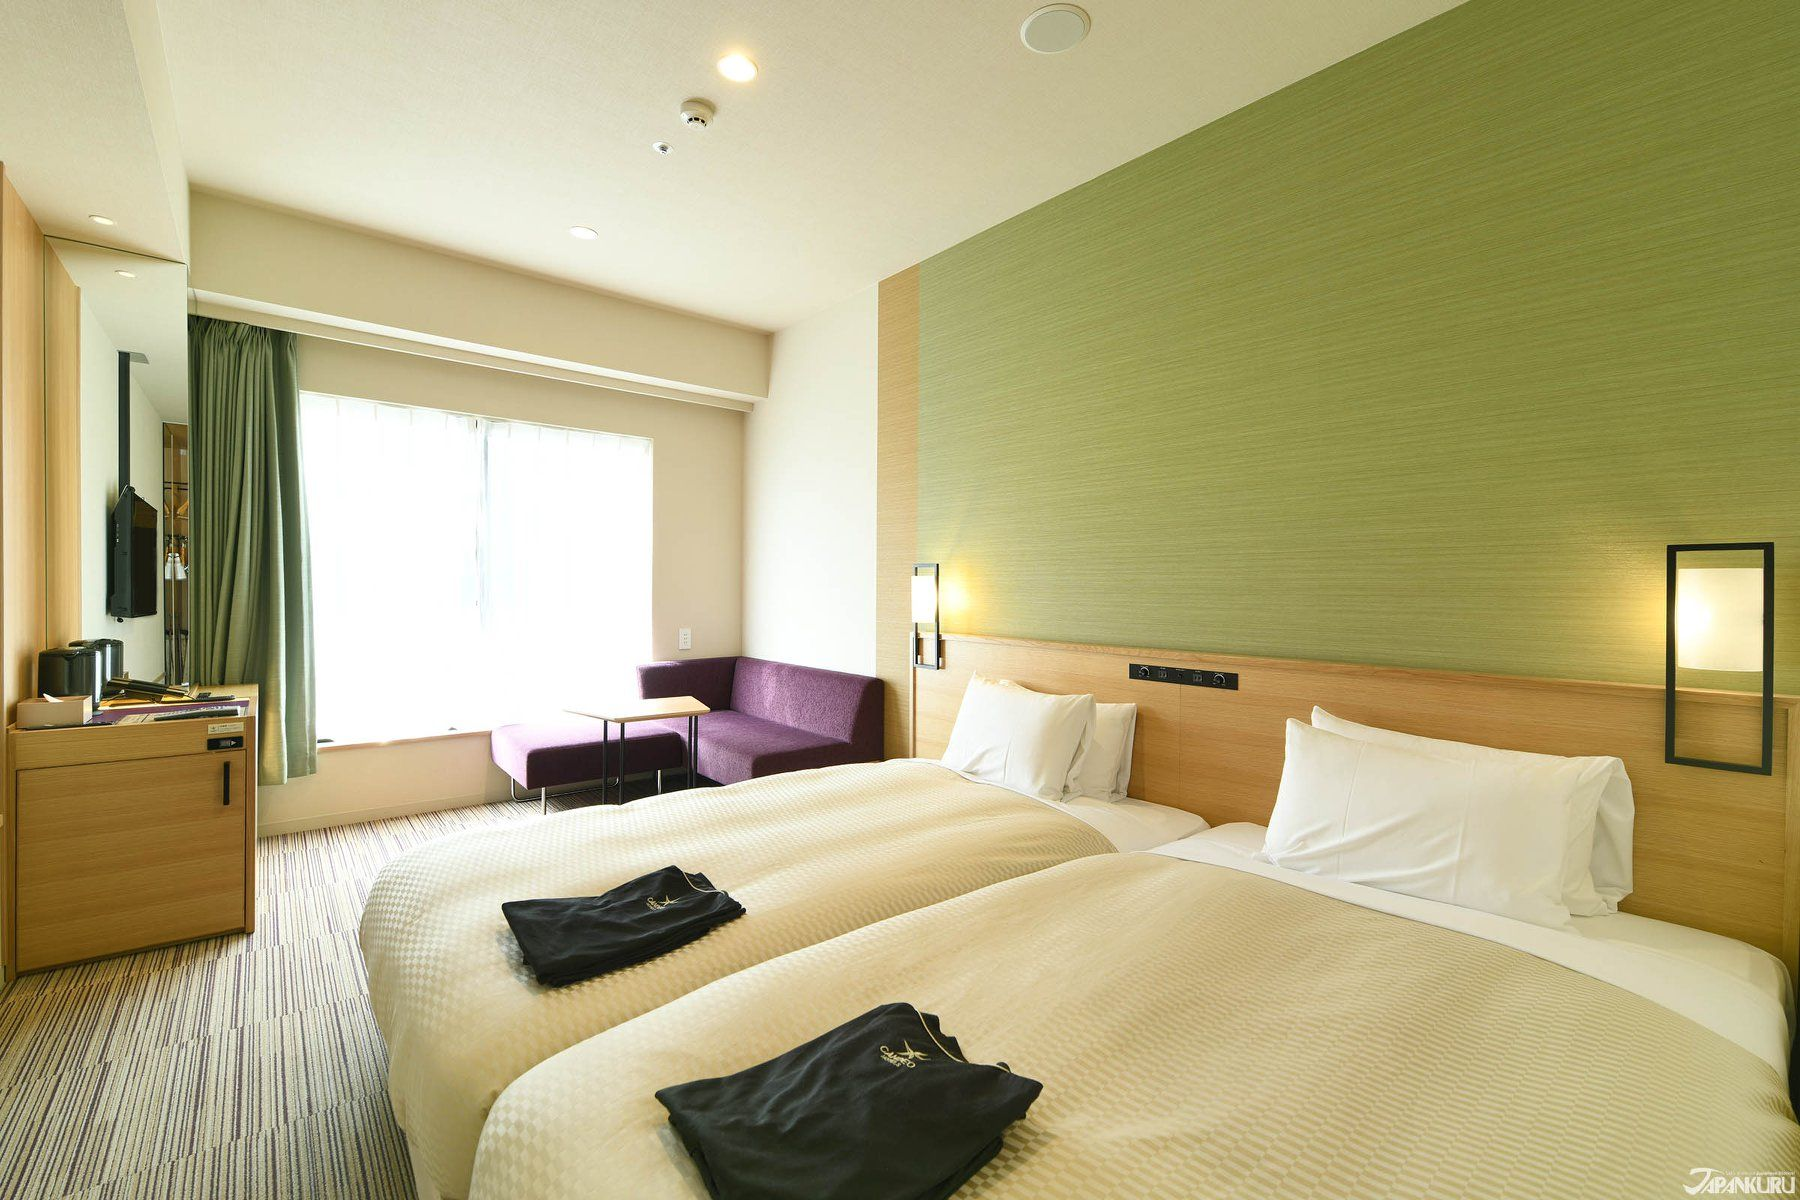 Get A Good Nights Sleep In The Executive Twin Room W City View At Candeo Hotel Osaka Namba Japankuru Hotels Japan Os Hotels Room Accommodations Twins Room